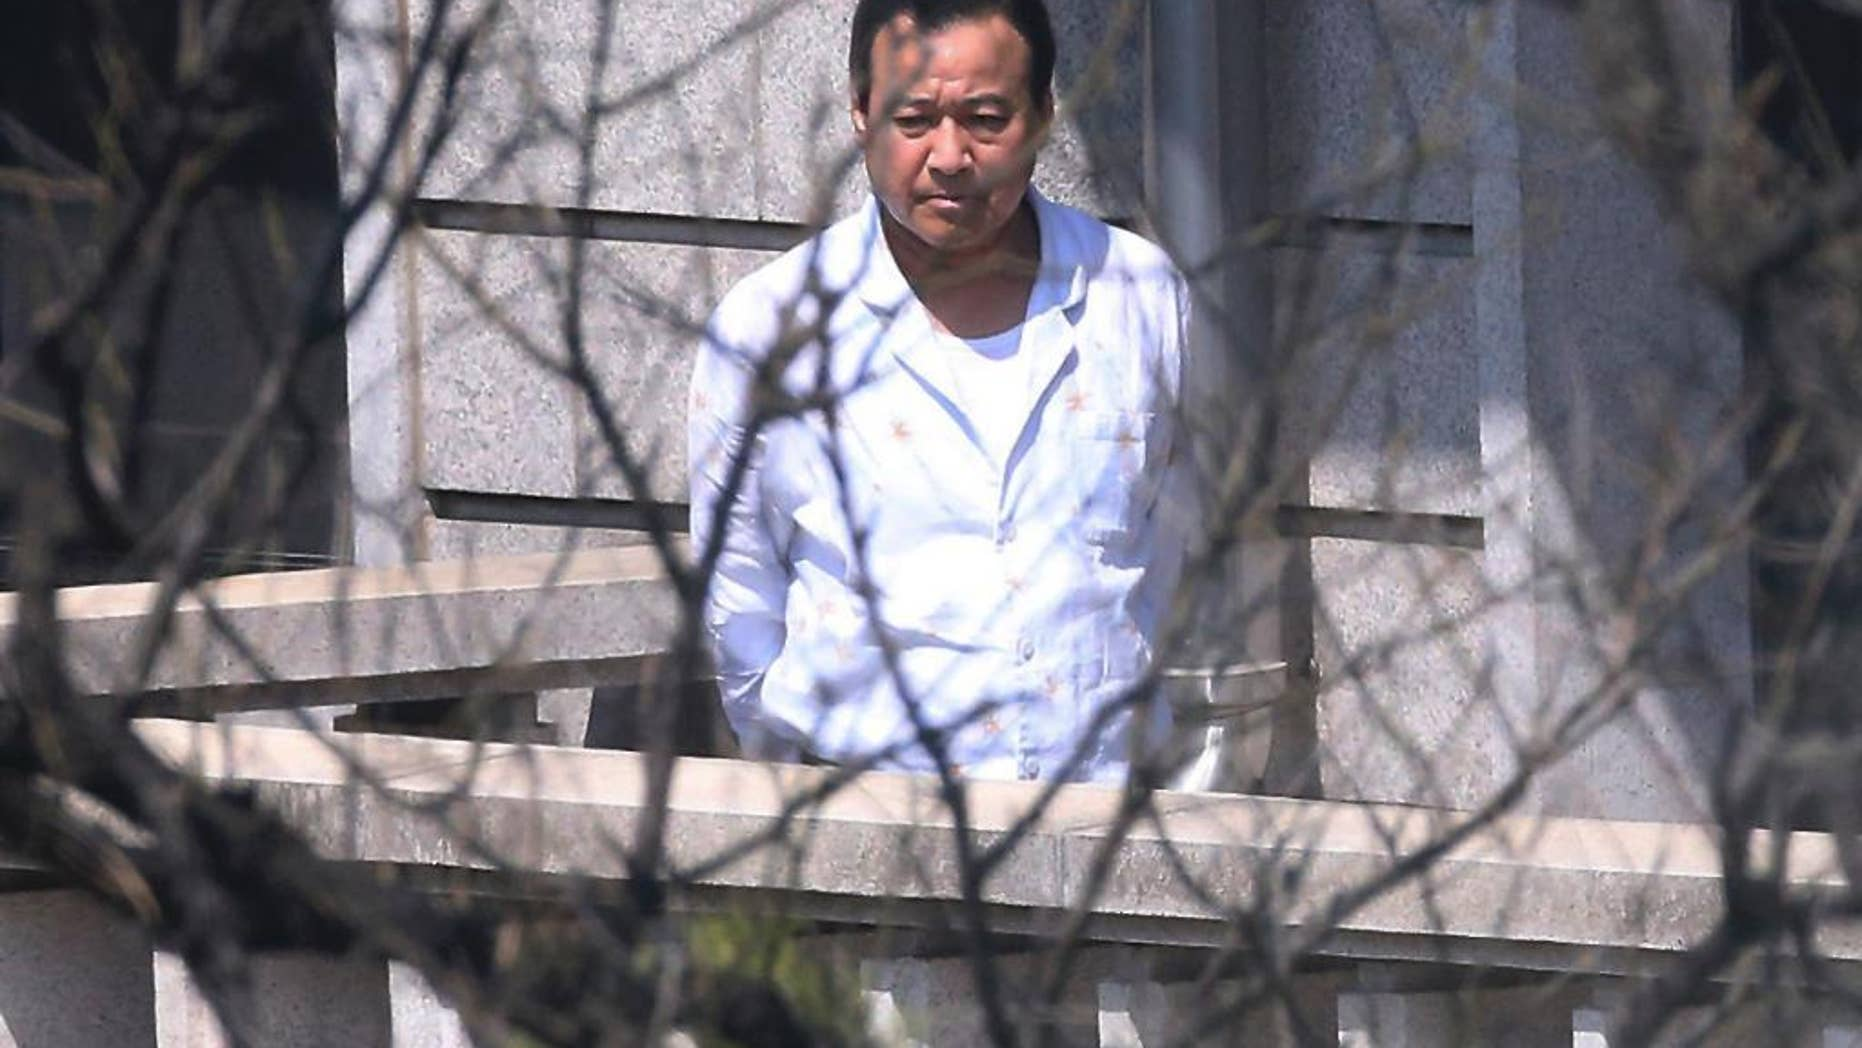 South Korean Prime Minister Lee Wan Koo walks on the terrace of his residence in Seoul, South Korea, Tuesday, April 21, 2015. Lee has offered to resign amid a bribery scandal just two months after he took up the country's No. 2 post, officials said Tuesday, in the latest political crisis to hit President Park Geun-hye. (Kim Bong-kyu/The Hankyoreh via AP) KOREA OUT